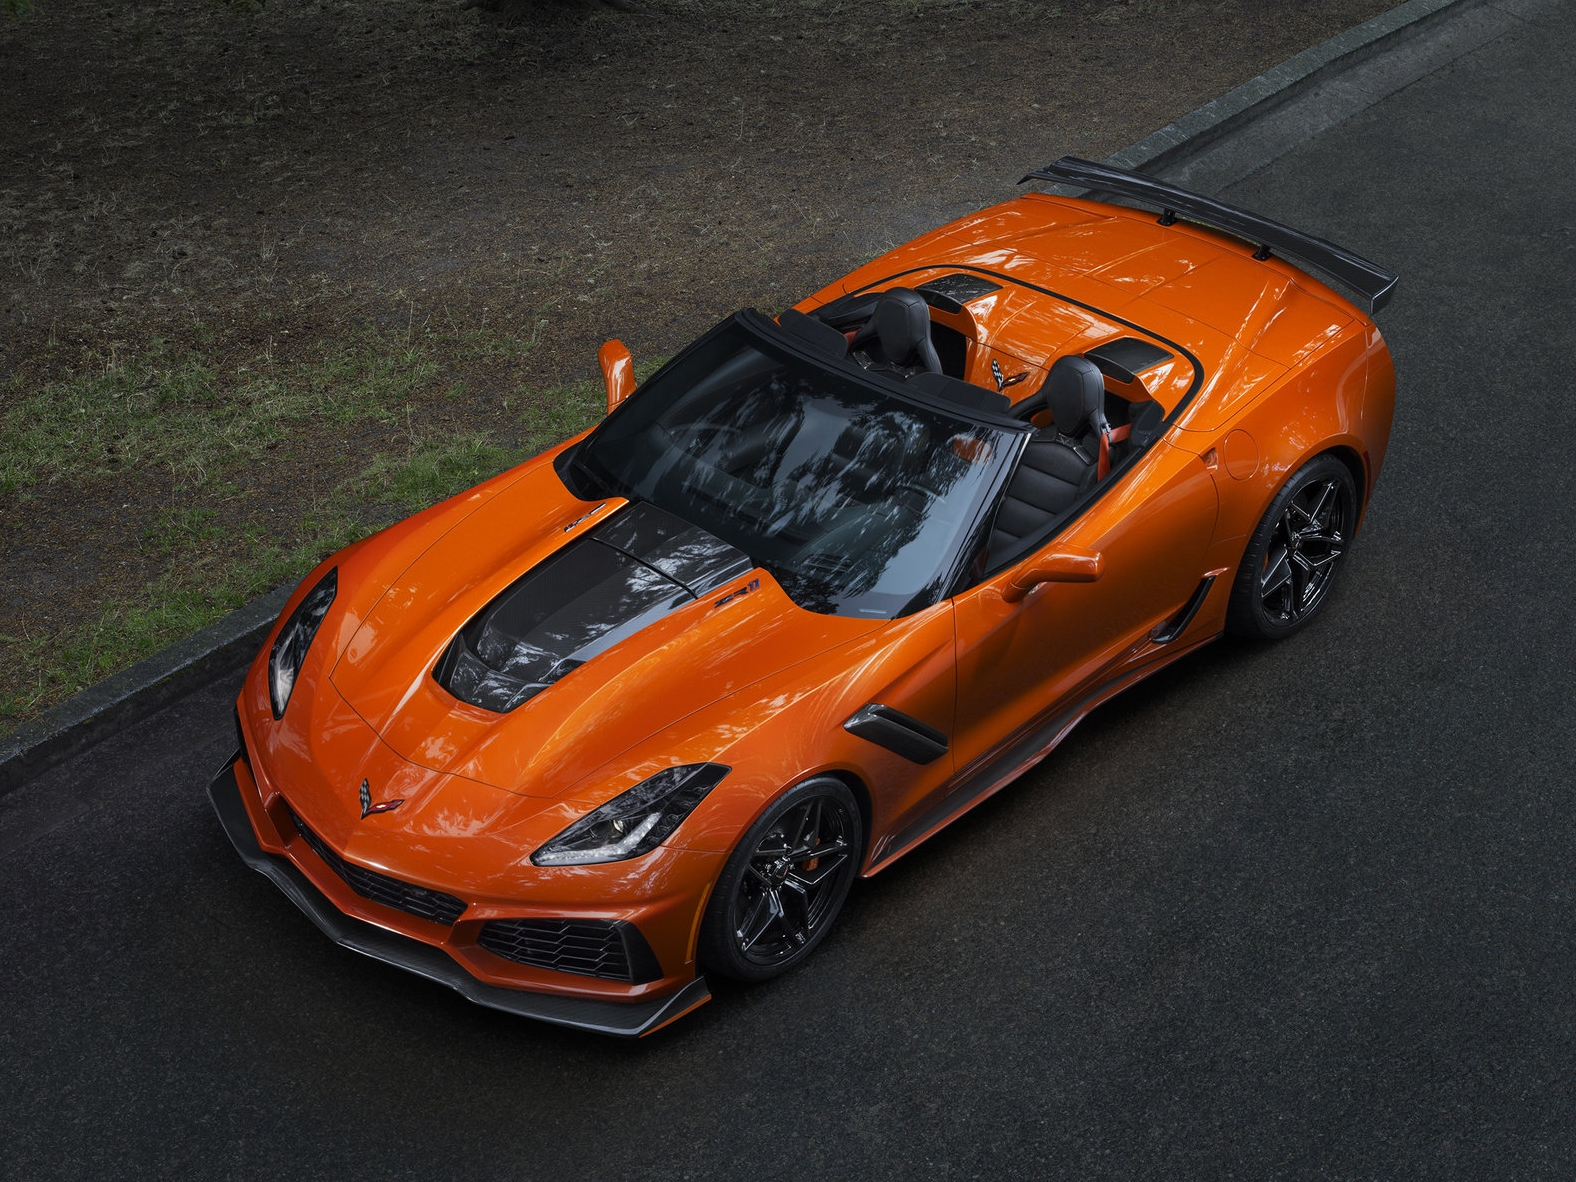 The ZR-1 convertible is so aggressively and full of tuner-esque add-ons that it's hard to take seriously on a global level.